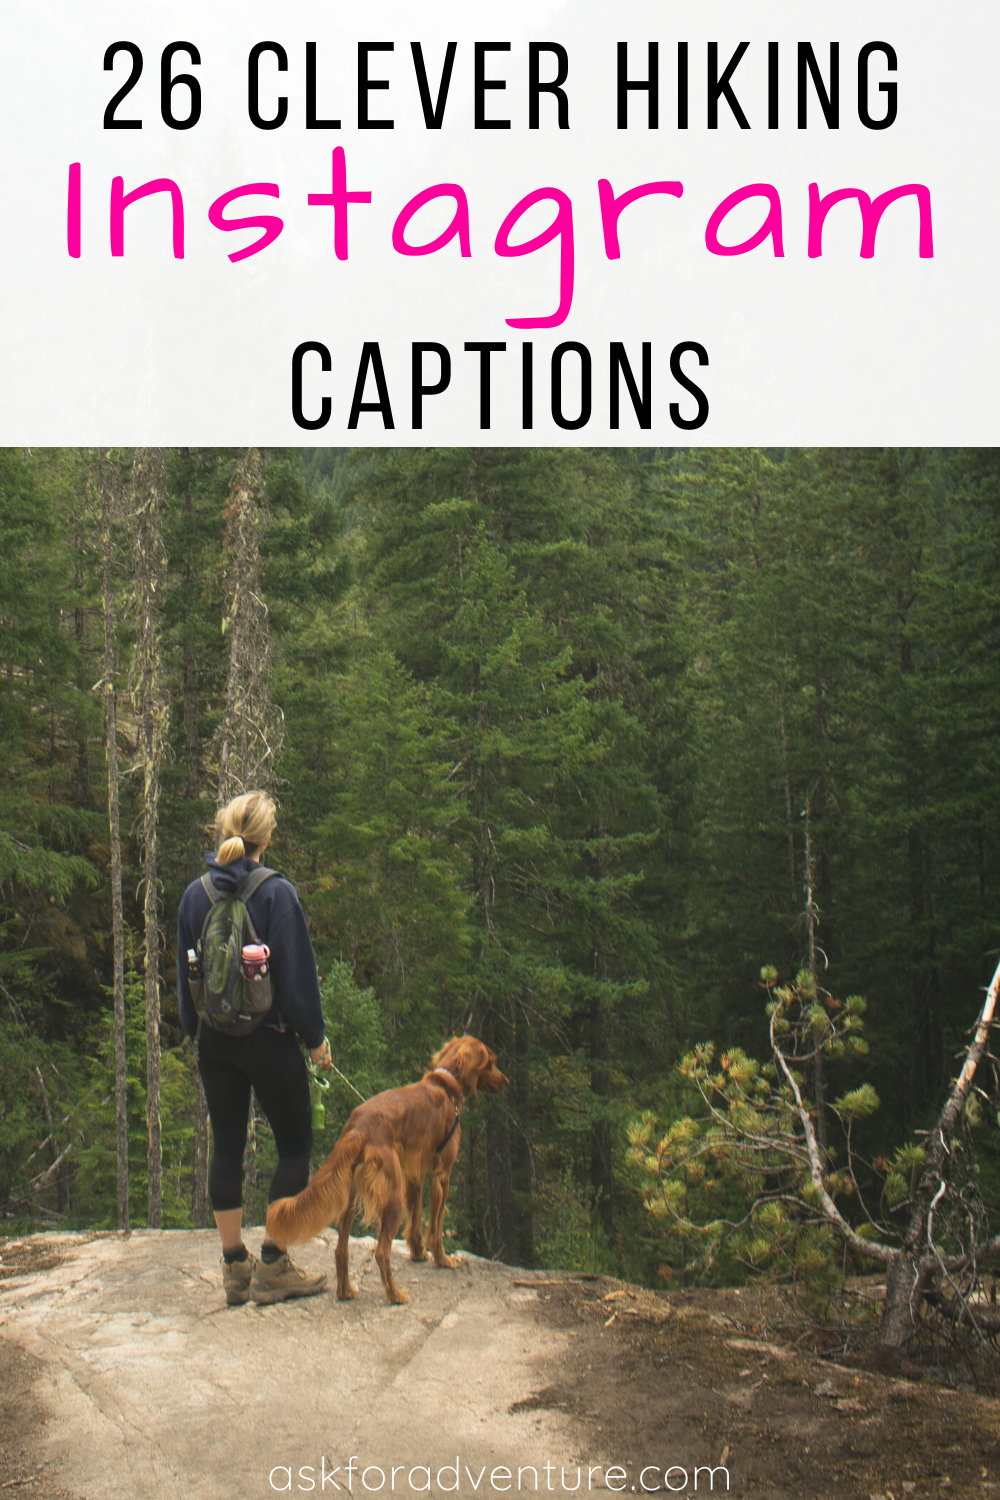 26 Good Instagram Captions For Hiking Pictures Ask For Adventure Instagram Captions Hiking Quotes Hiking Pictures